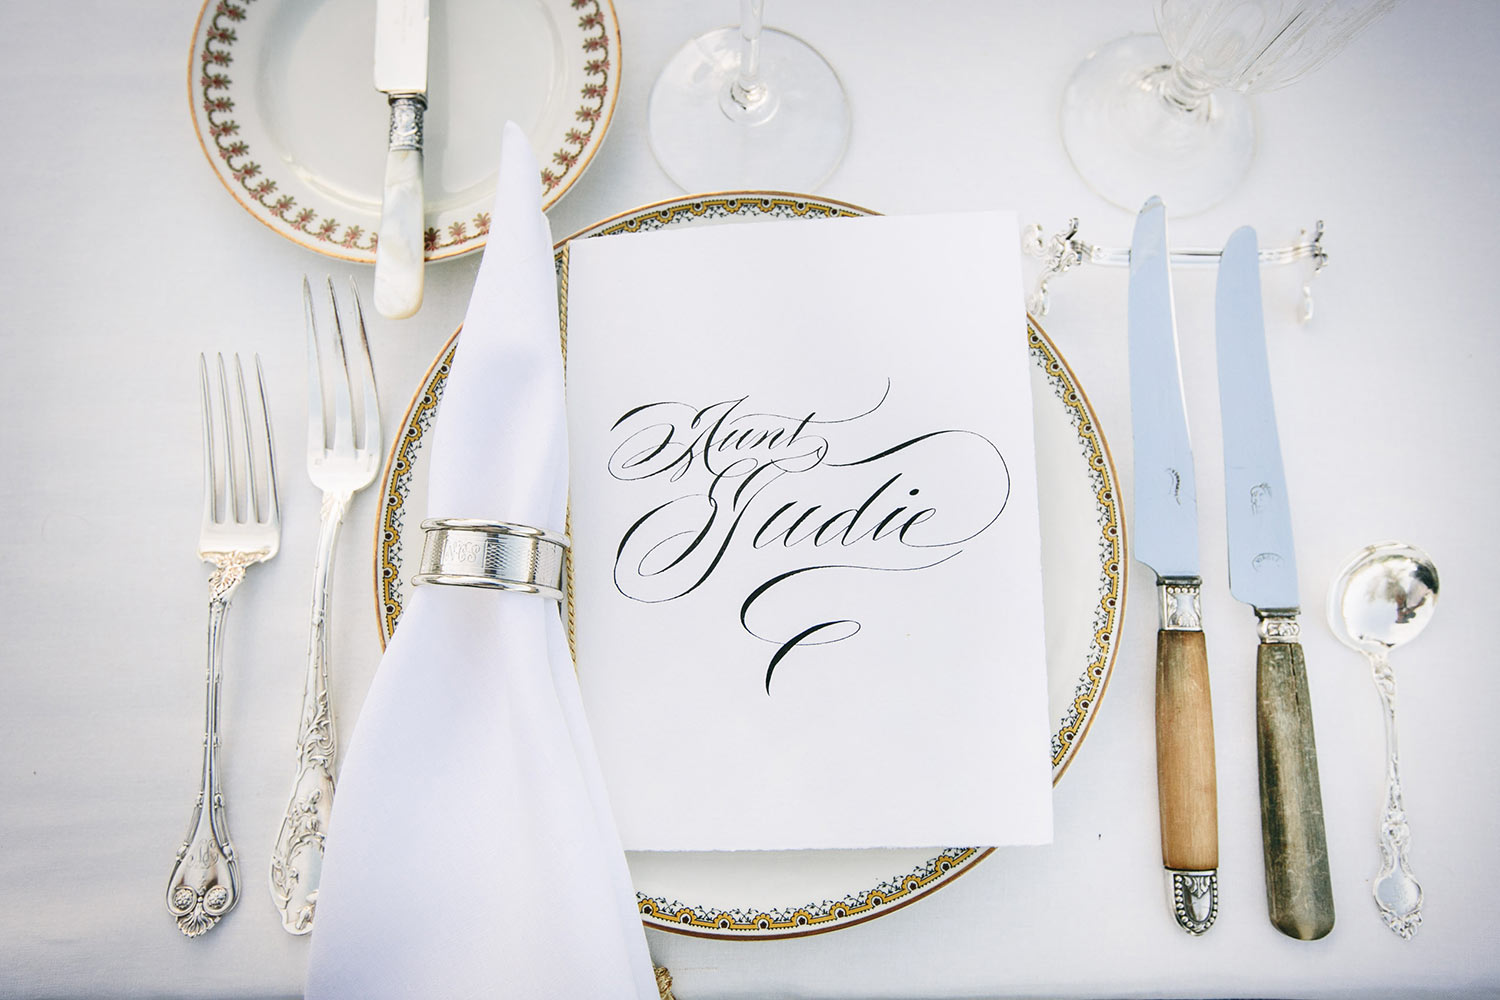 classic-table-setting-with-calligraphy-name-card-gold-edged-plates-worlds-best-wedding-photos-callaway-gable-los-angeles-wedding-photographers